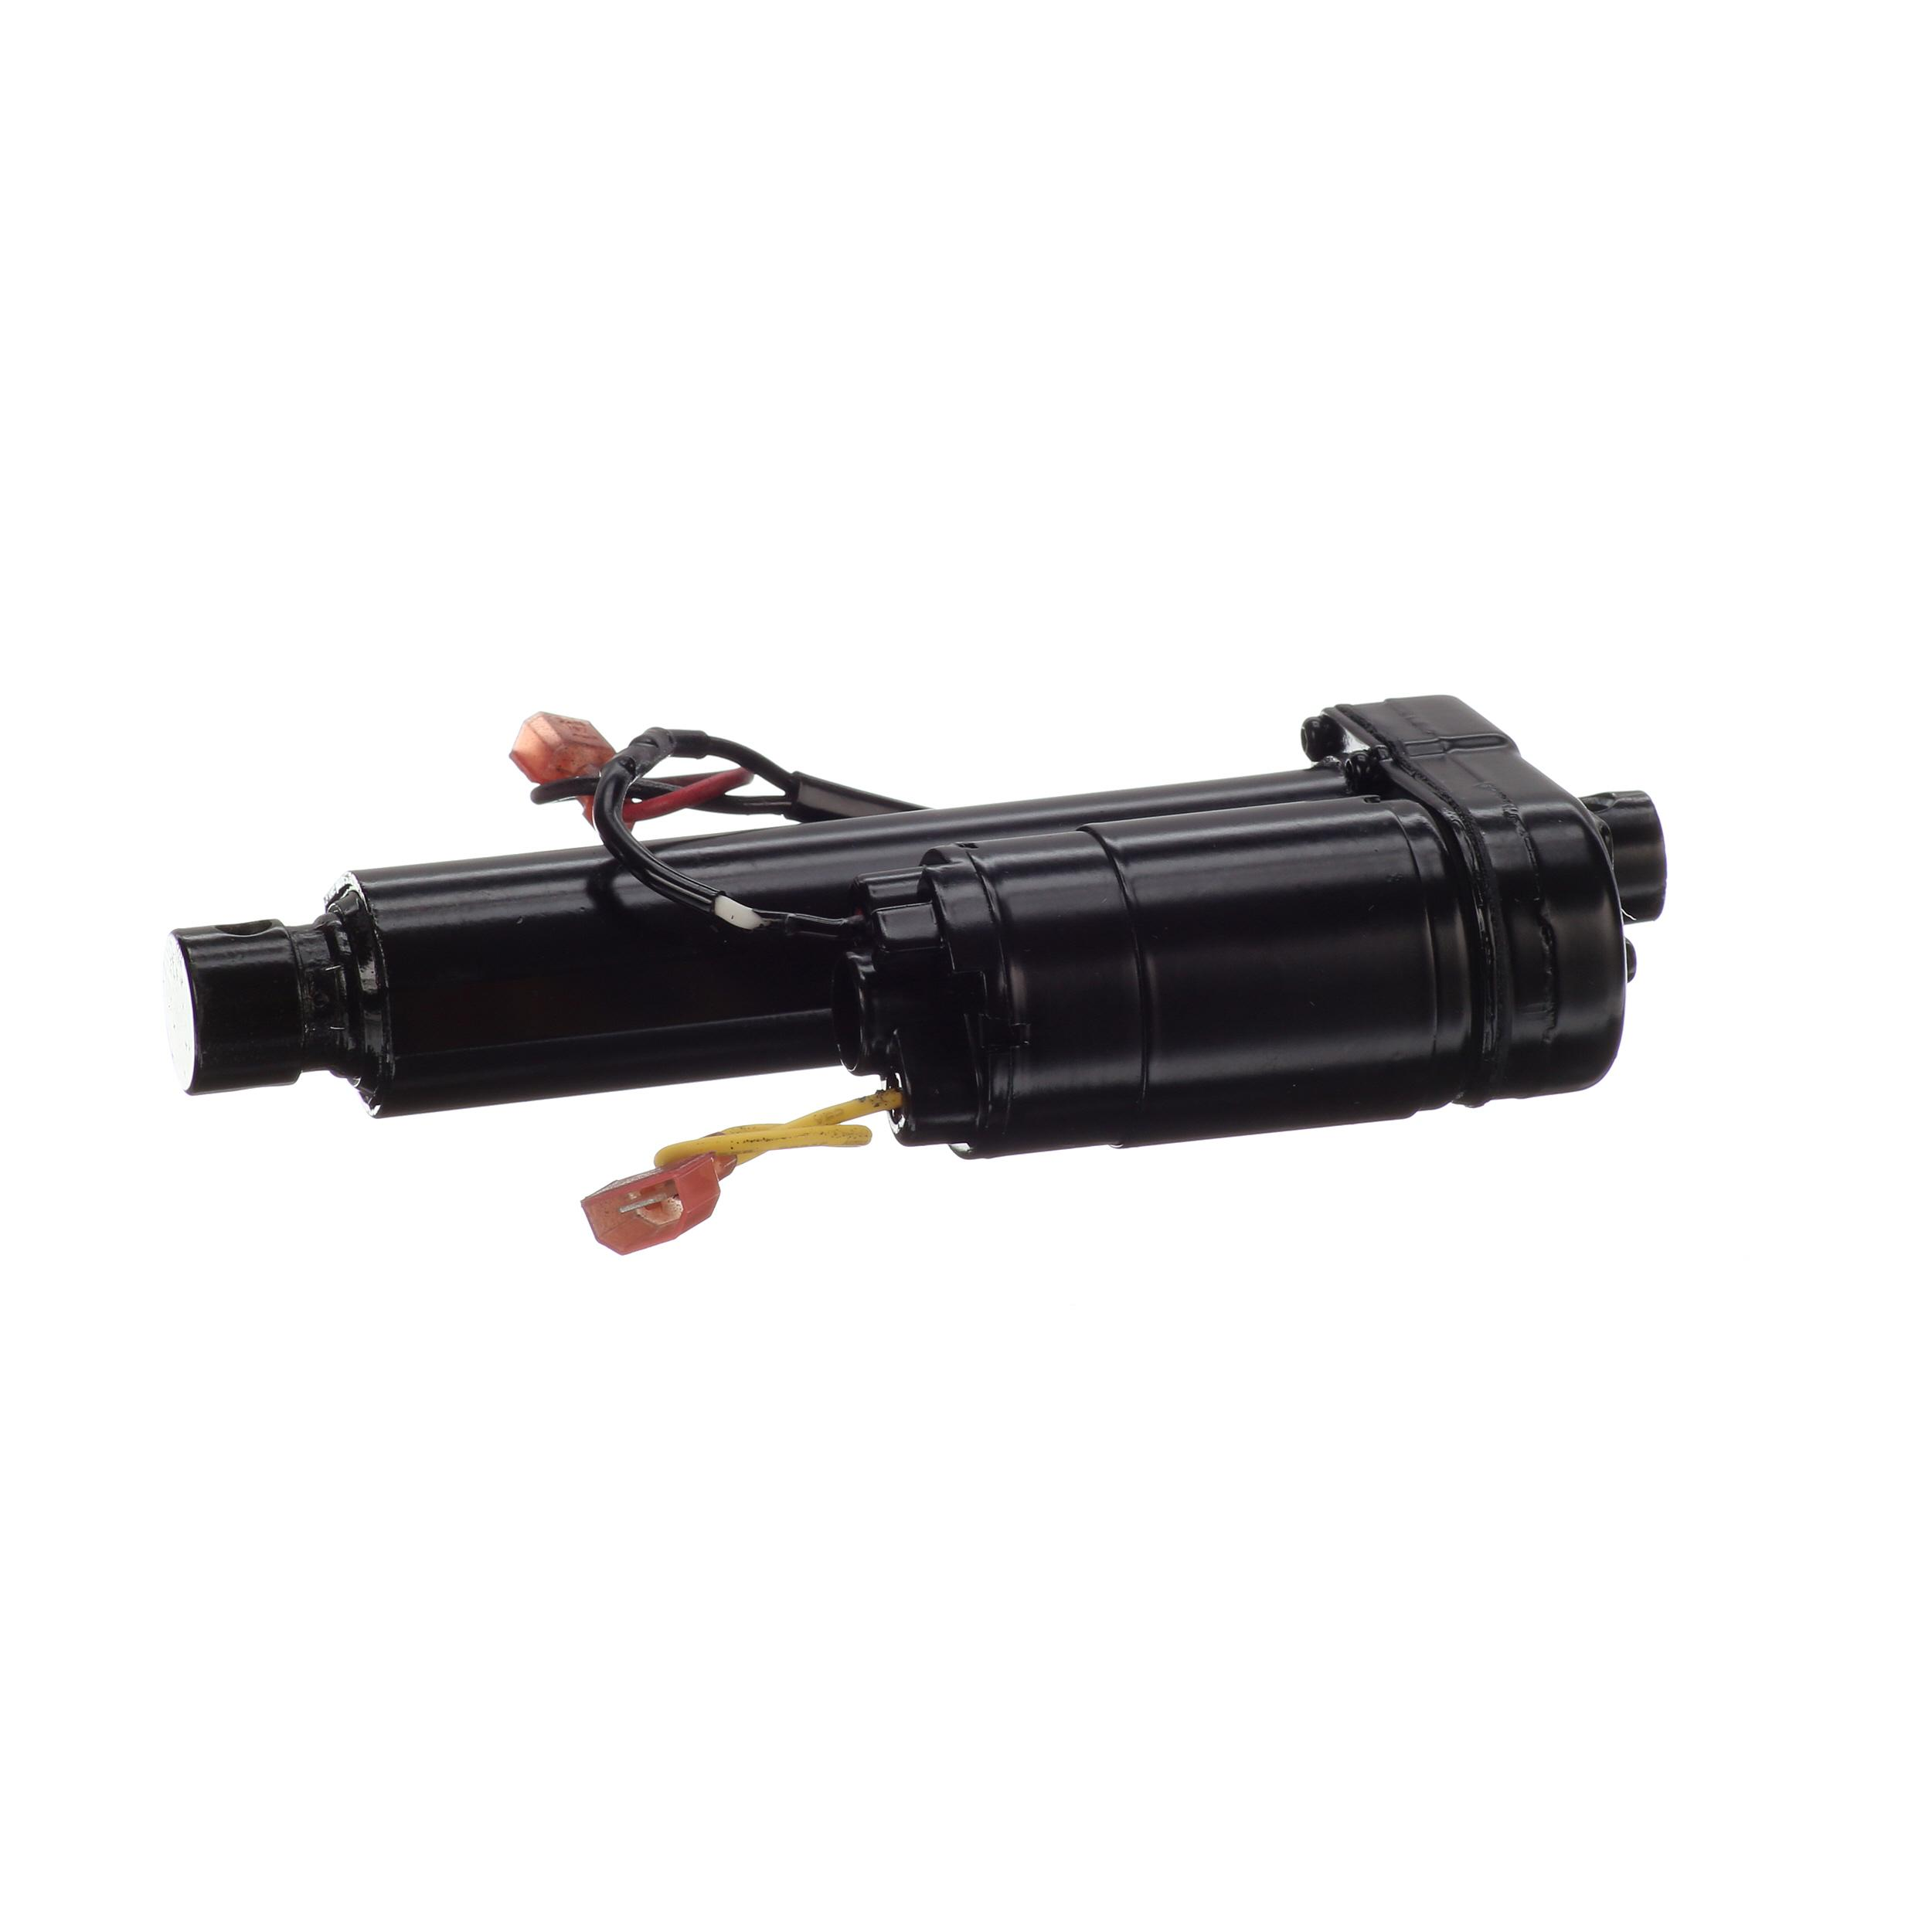 OVENTION LINEAR ACTUATOR, 24VDC, 50 LBS